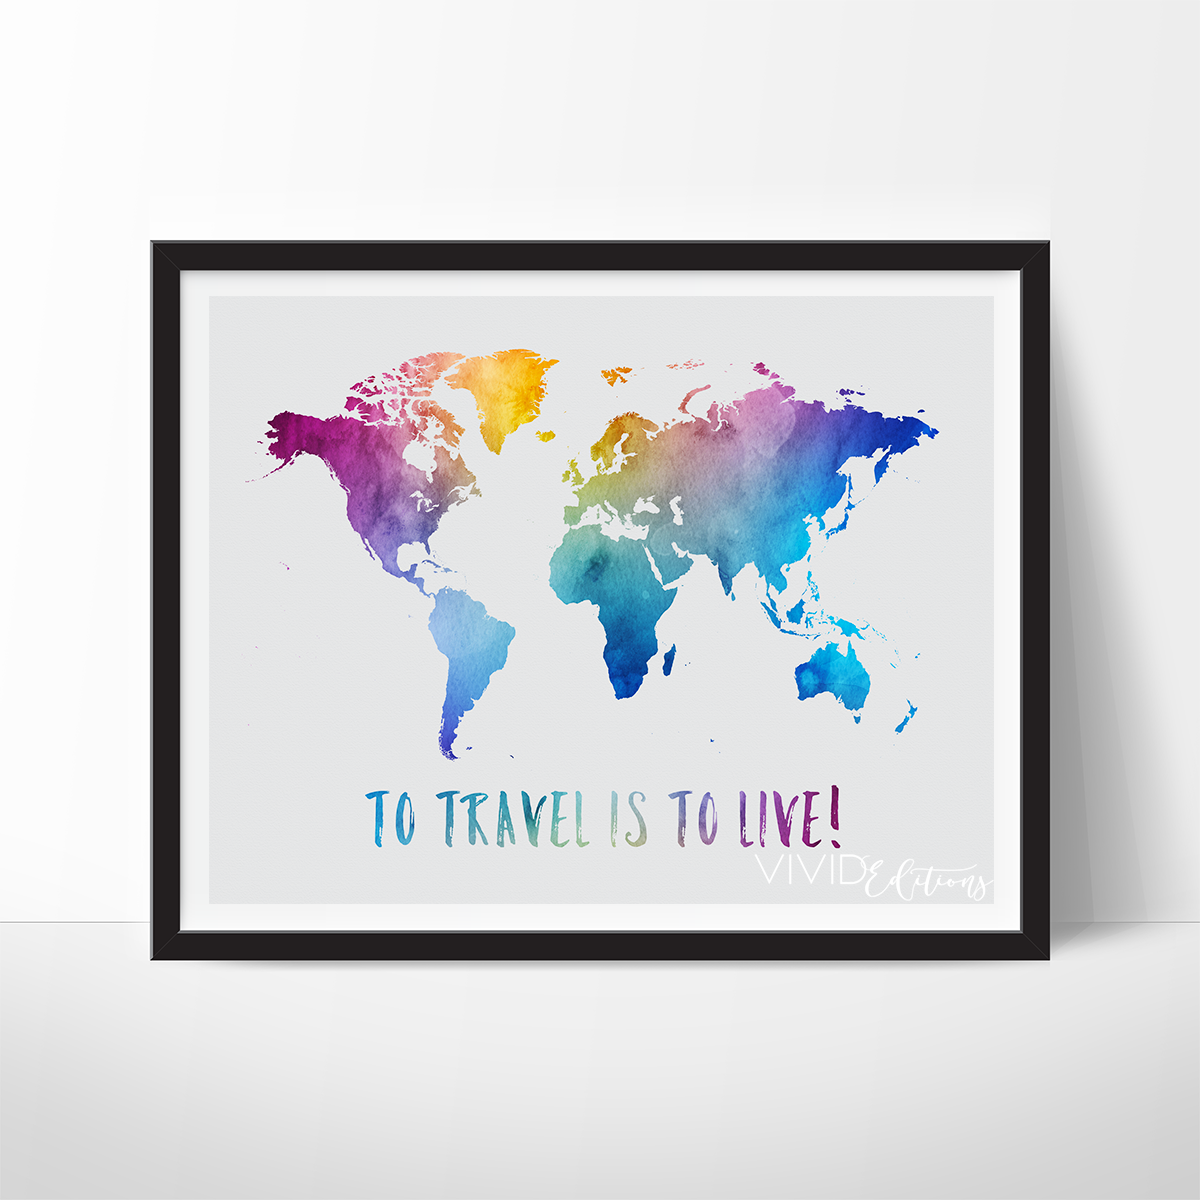 To travel is to live travel quote world map watercolor art print to travel is to live travel quote world map watercolor art print gumiabroncs Image collections